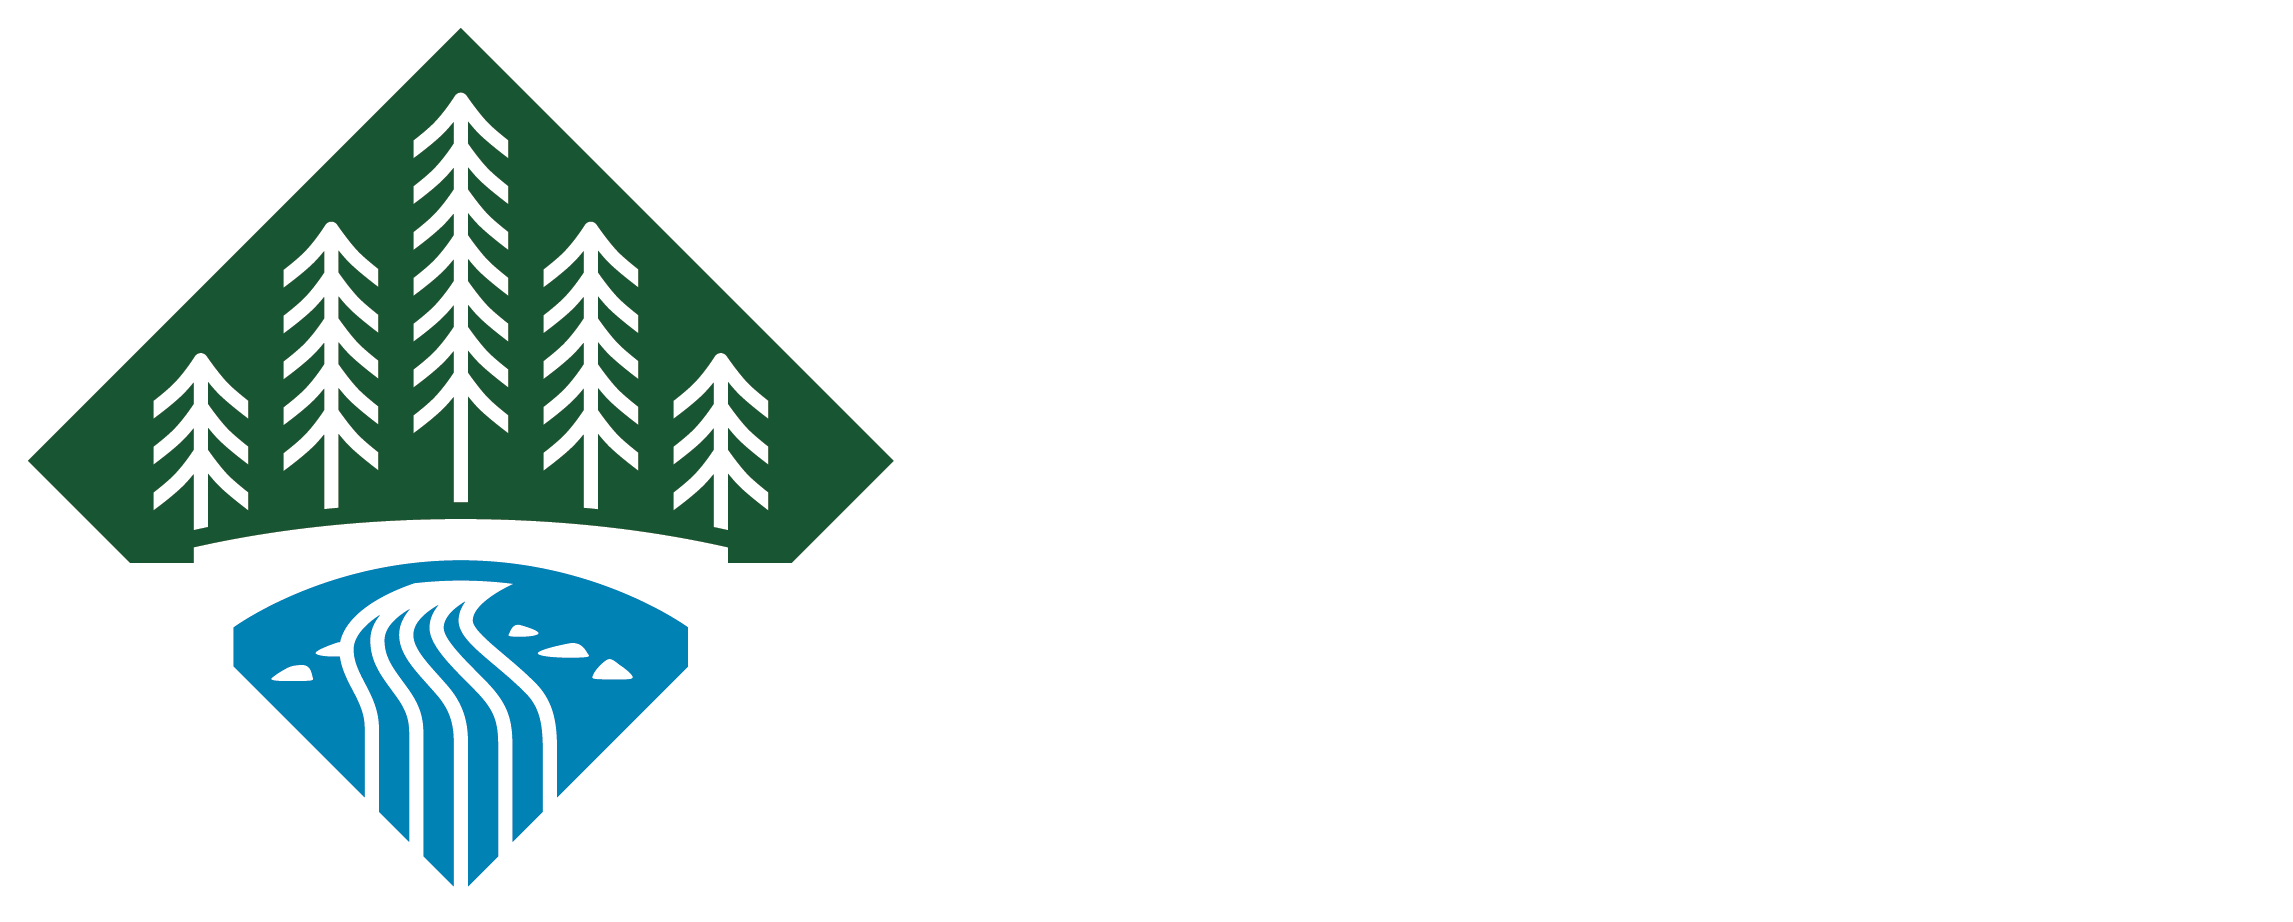 Northcentral Pennsylvania Conservancy